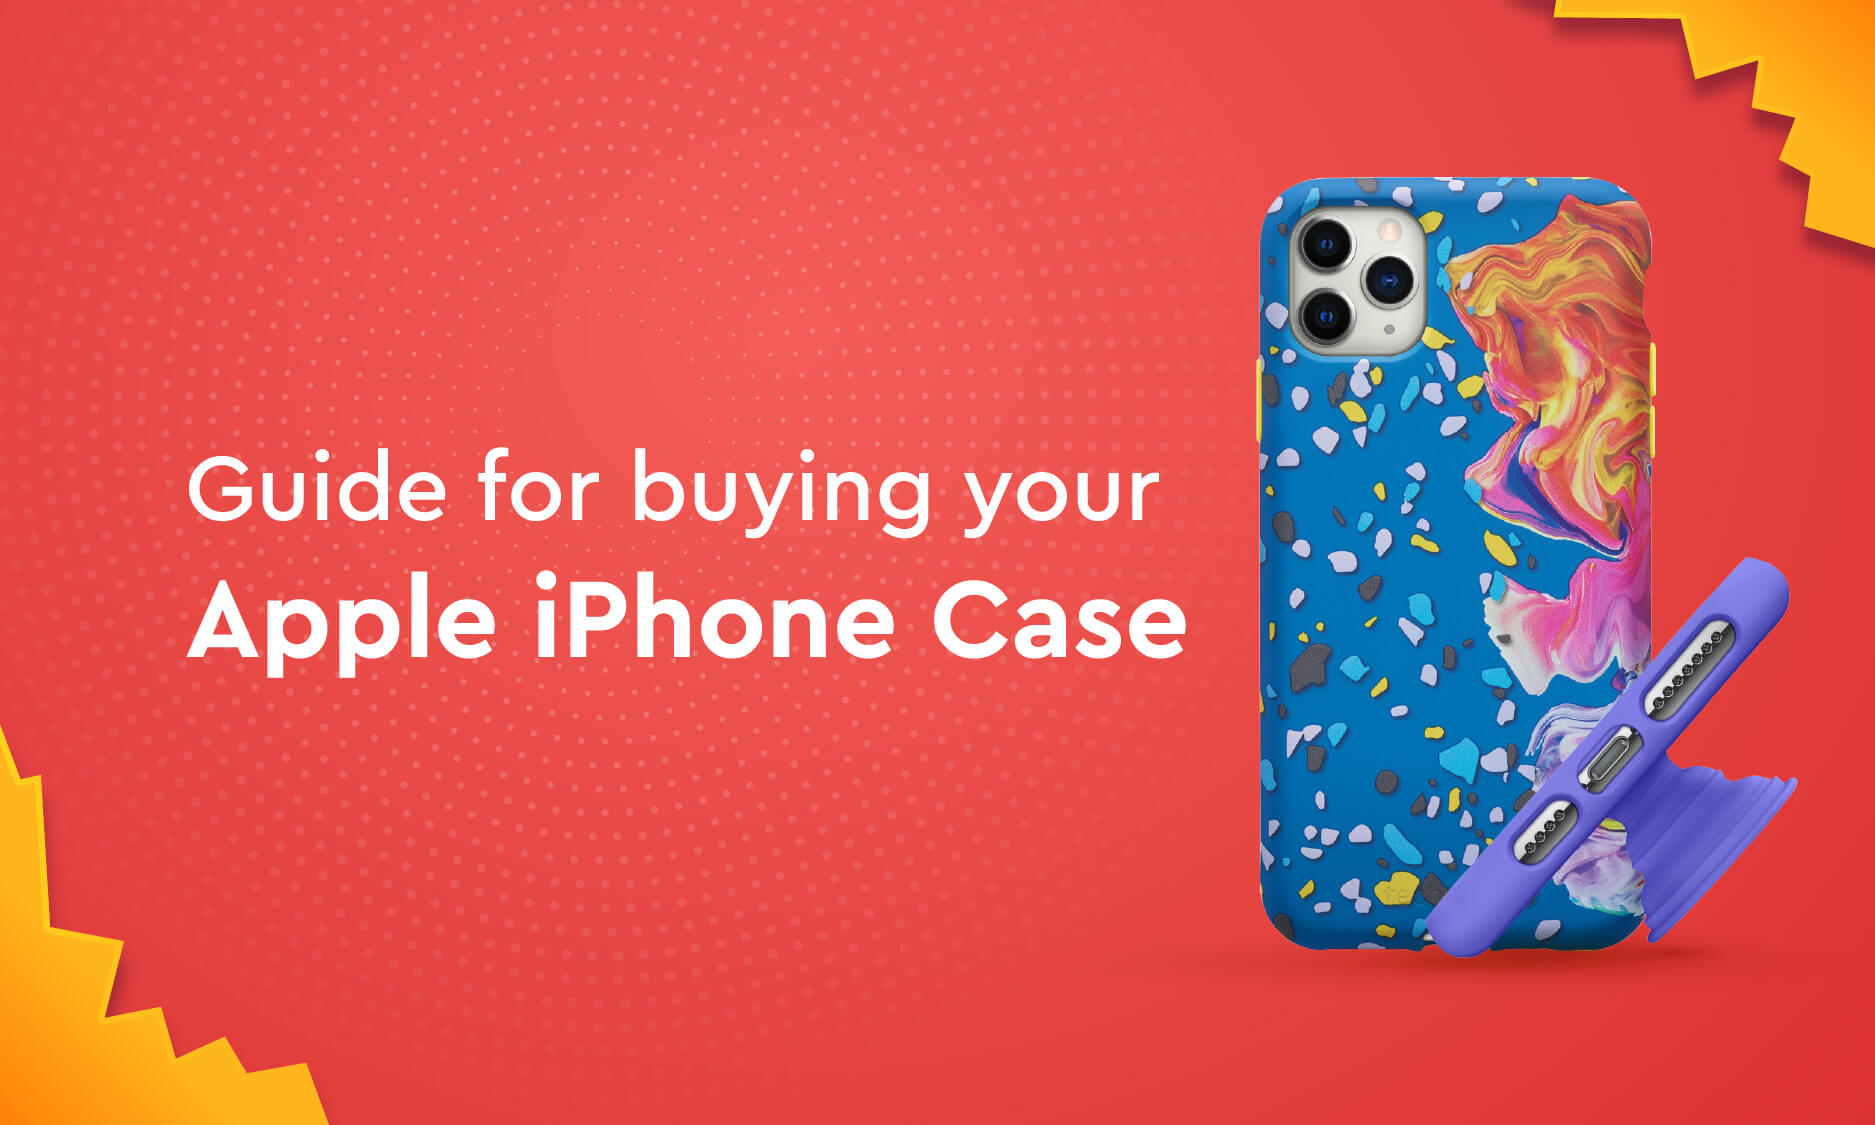 Guide for buying your iPhone Case